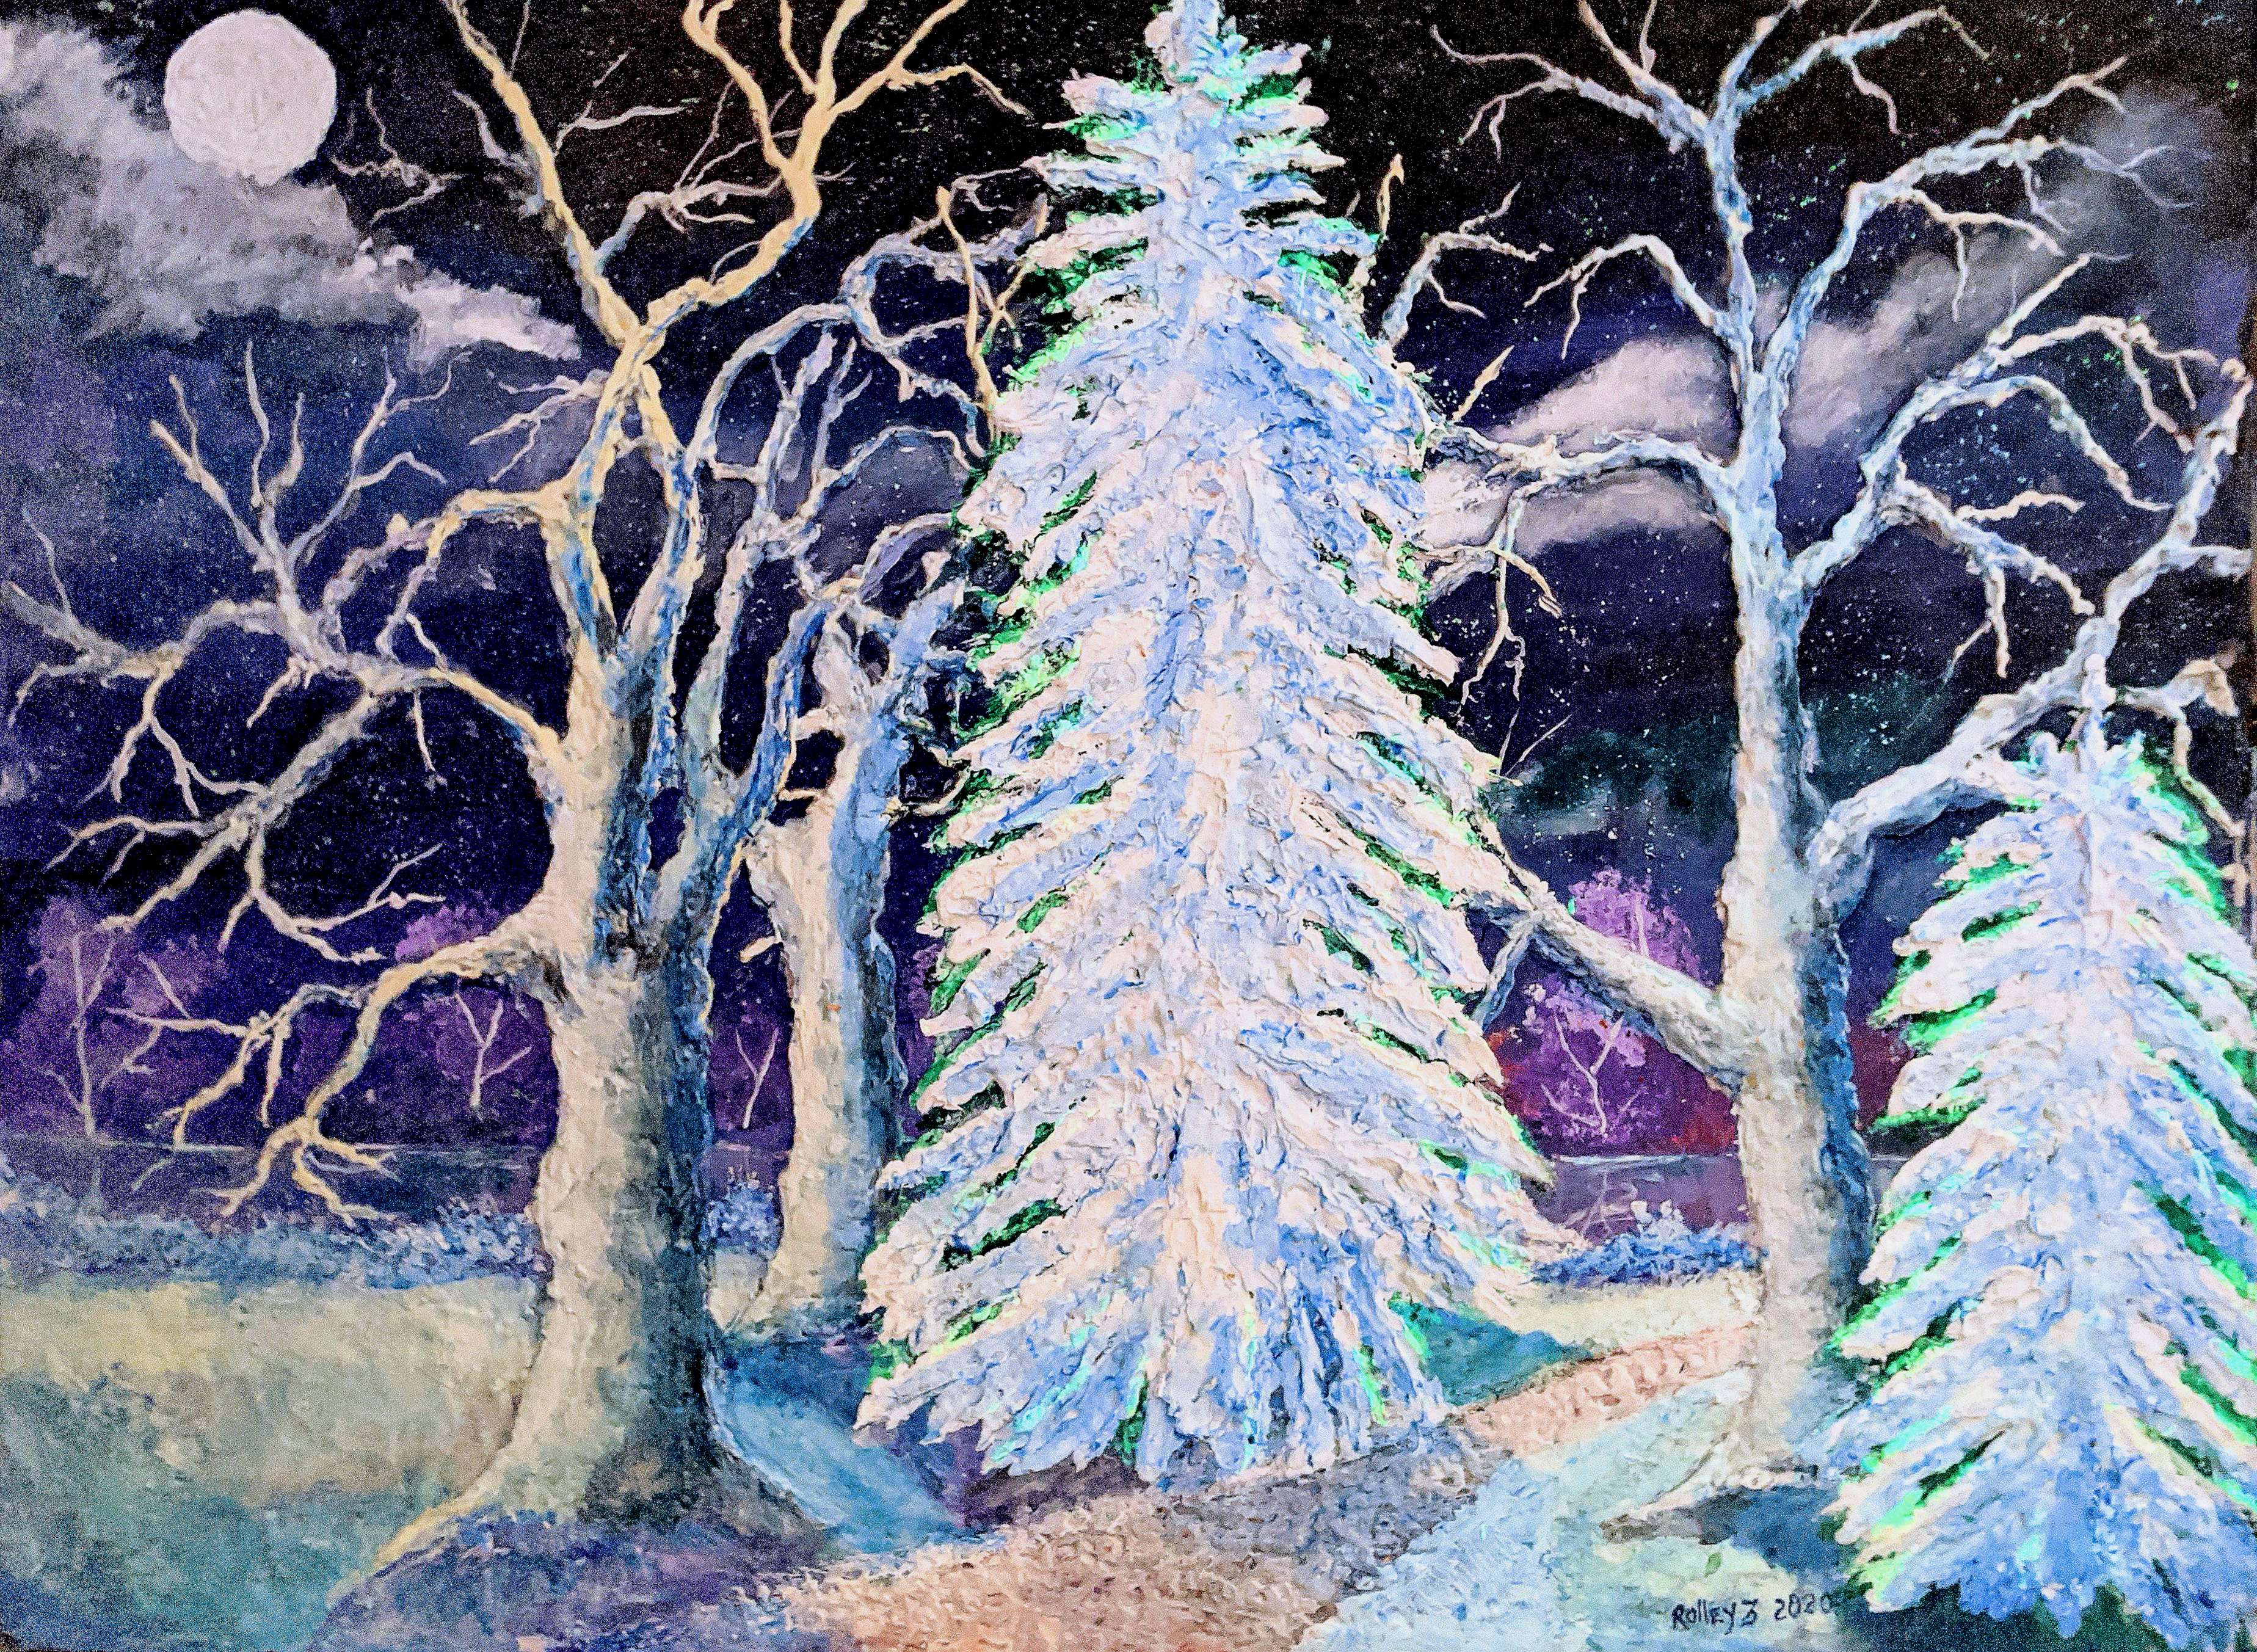 THE WINTER PATH  30x40 $900  HIGHLIGHTED WITH GLOW IN DARK LUMINESCENT PAINT